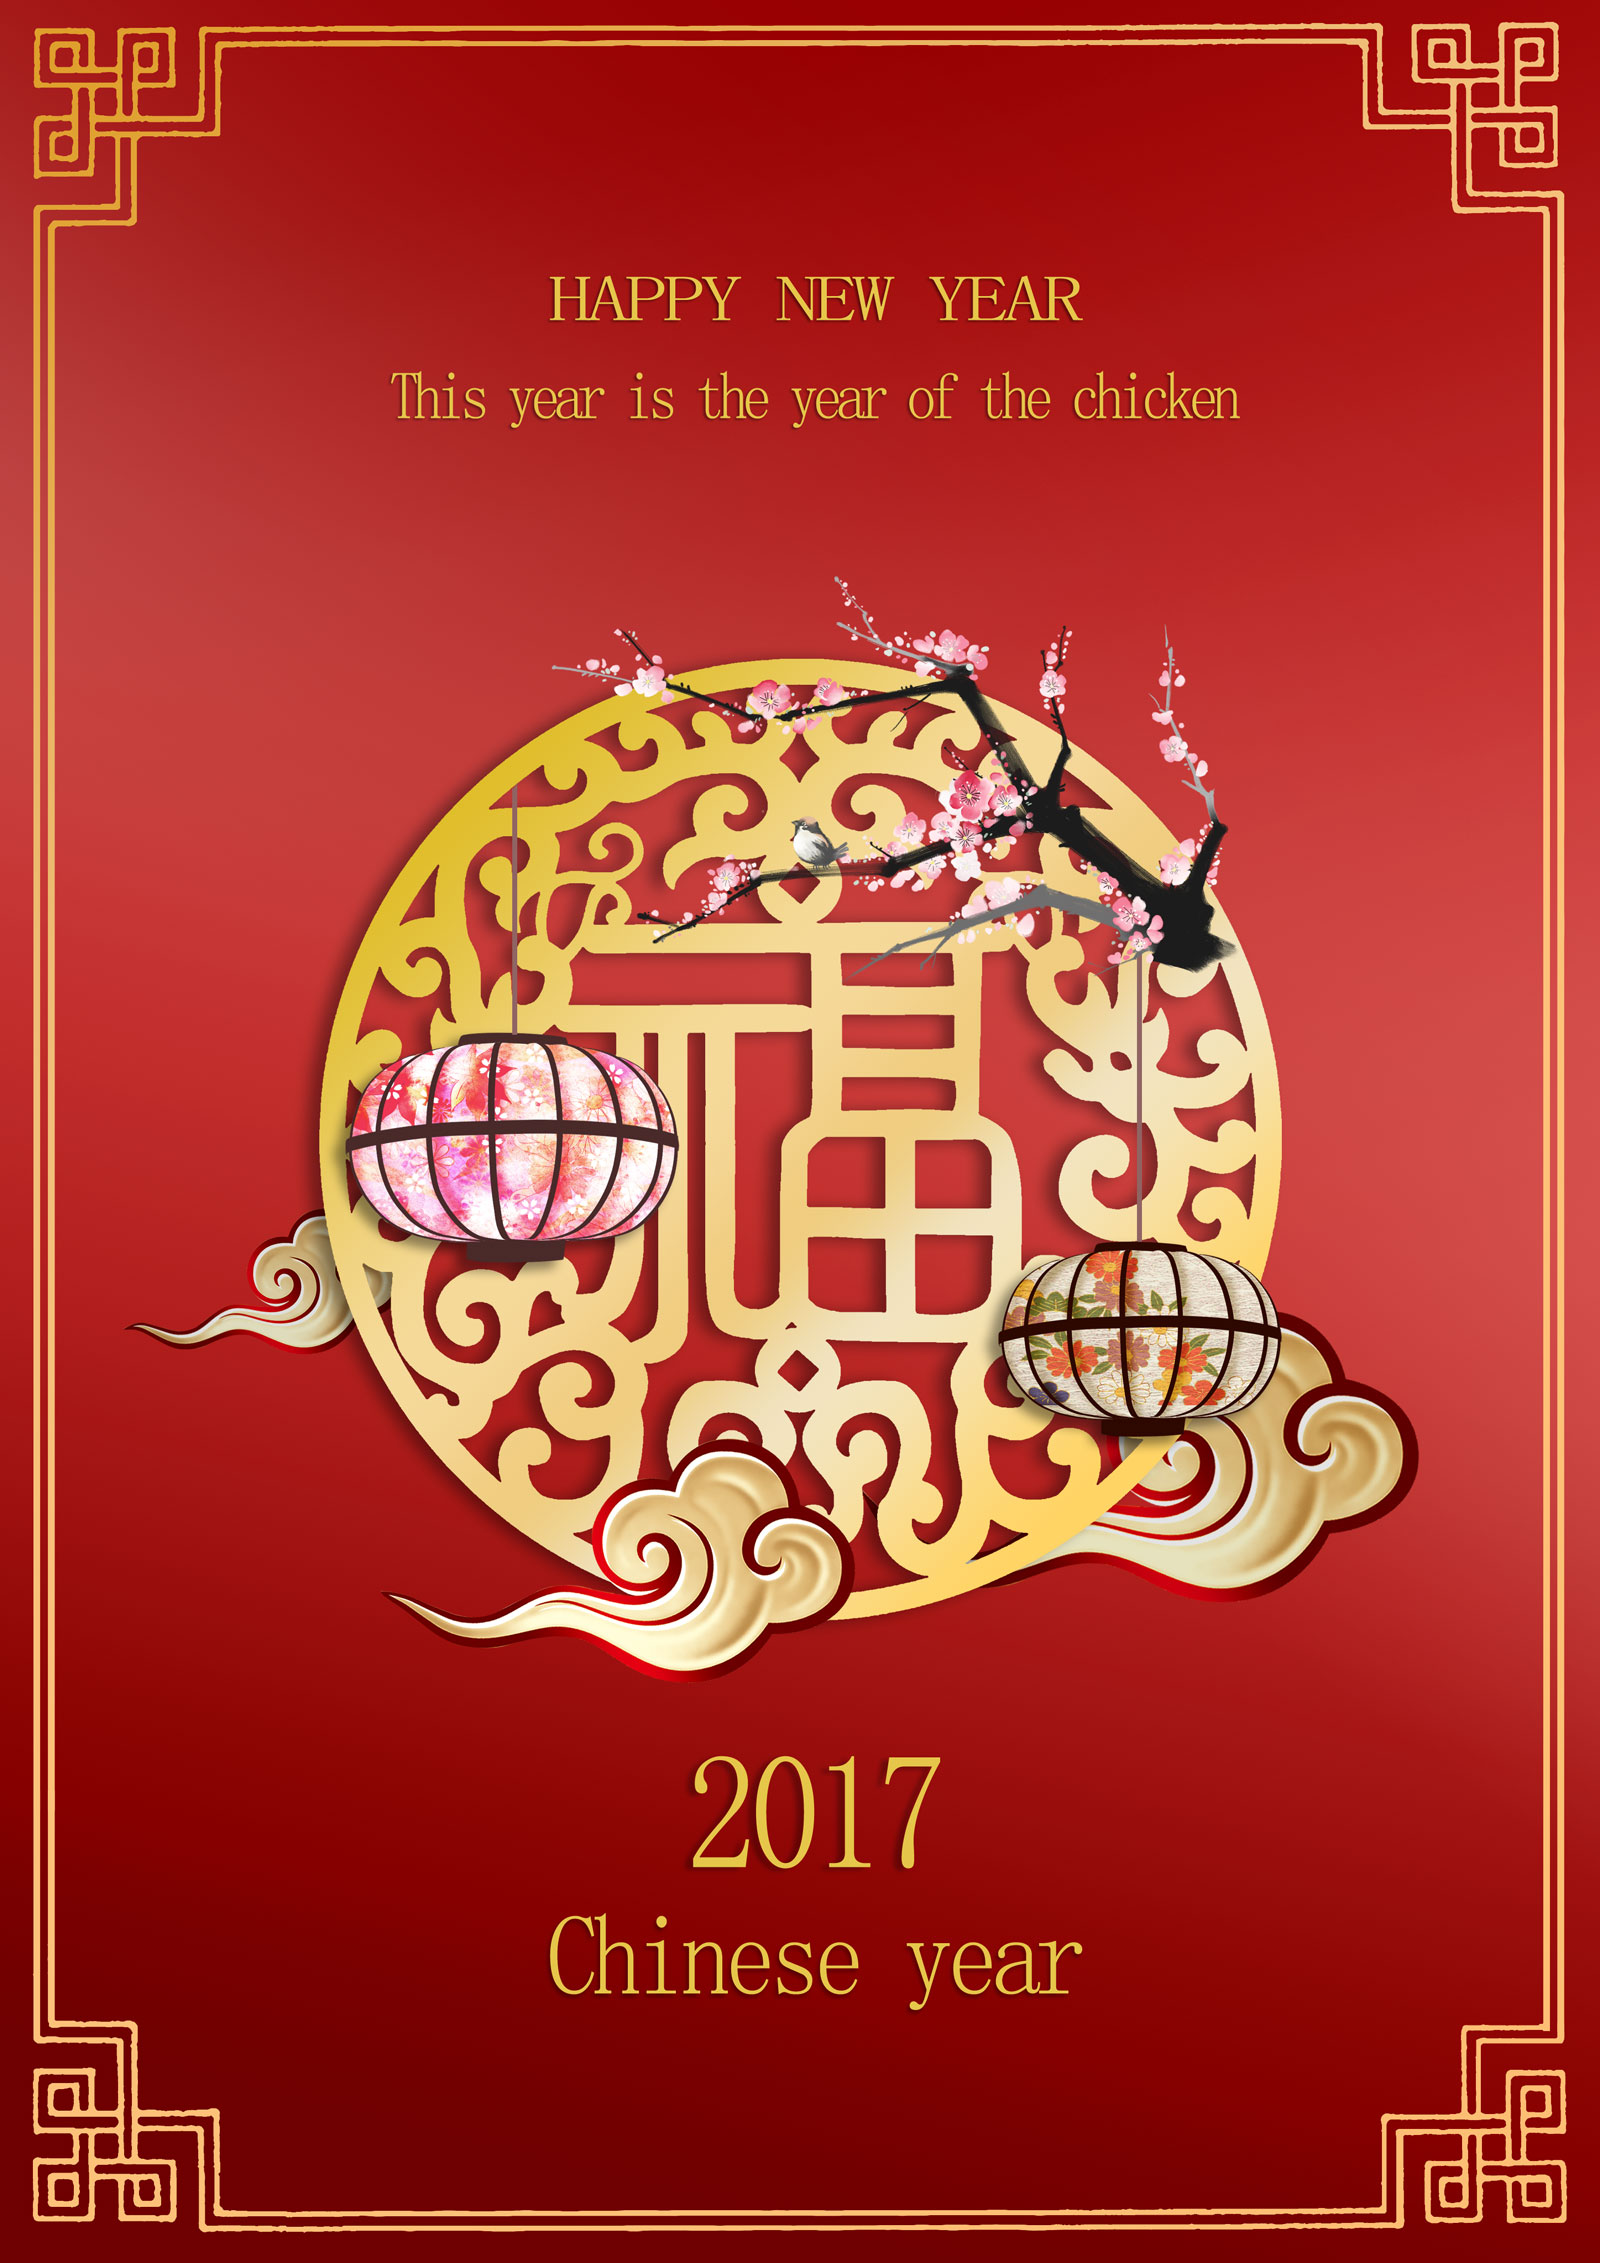 chinesefontdesign.com 2017 03 14 22 07 41 2017 Chinese New Year poster design   PSD Download